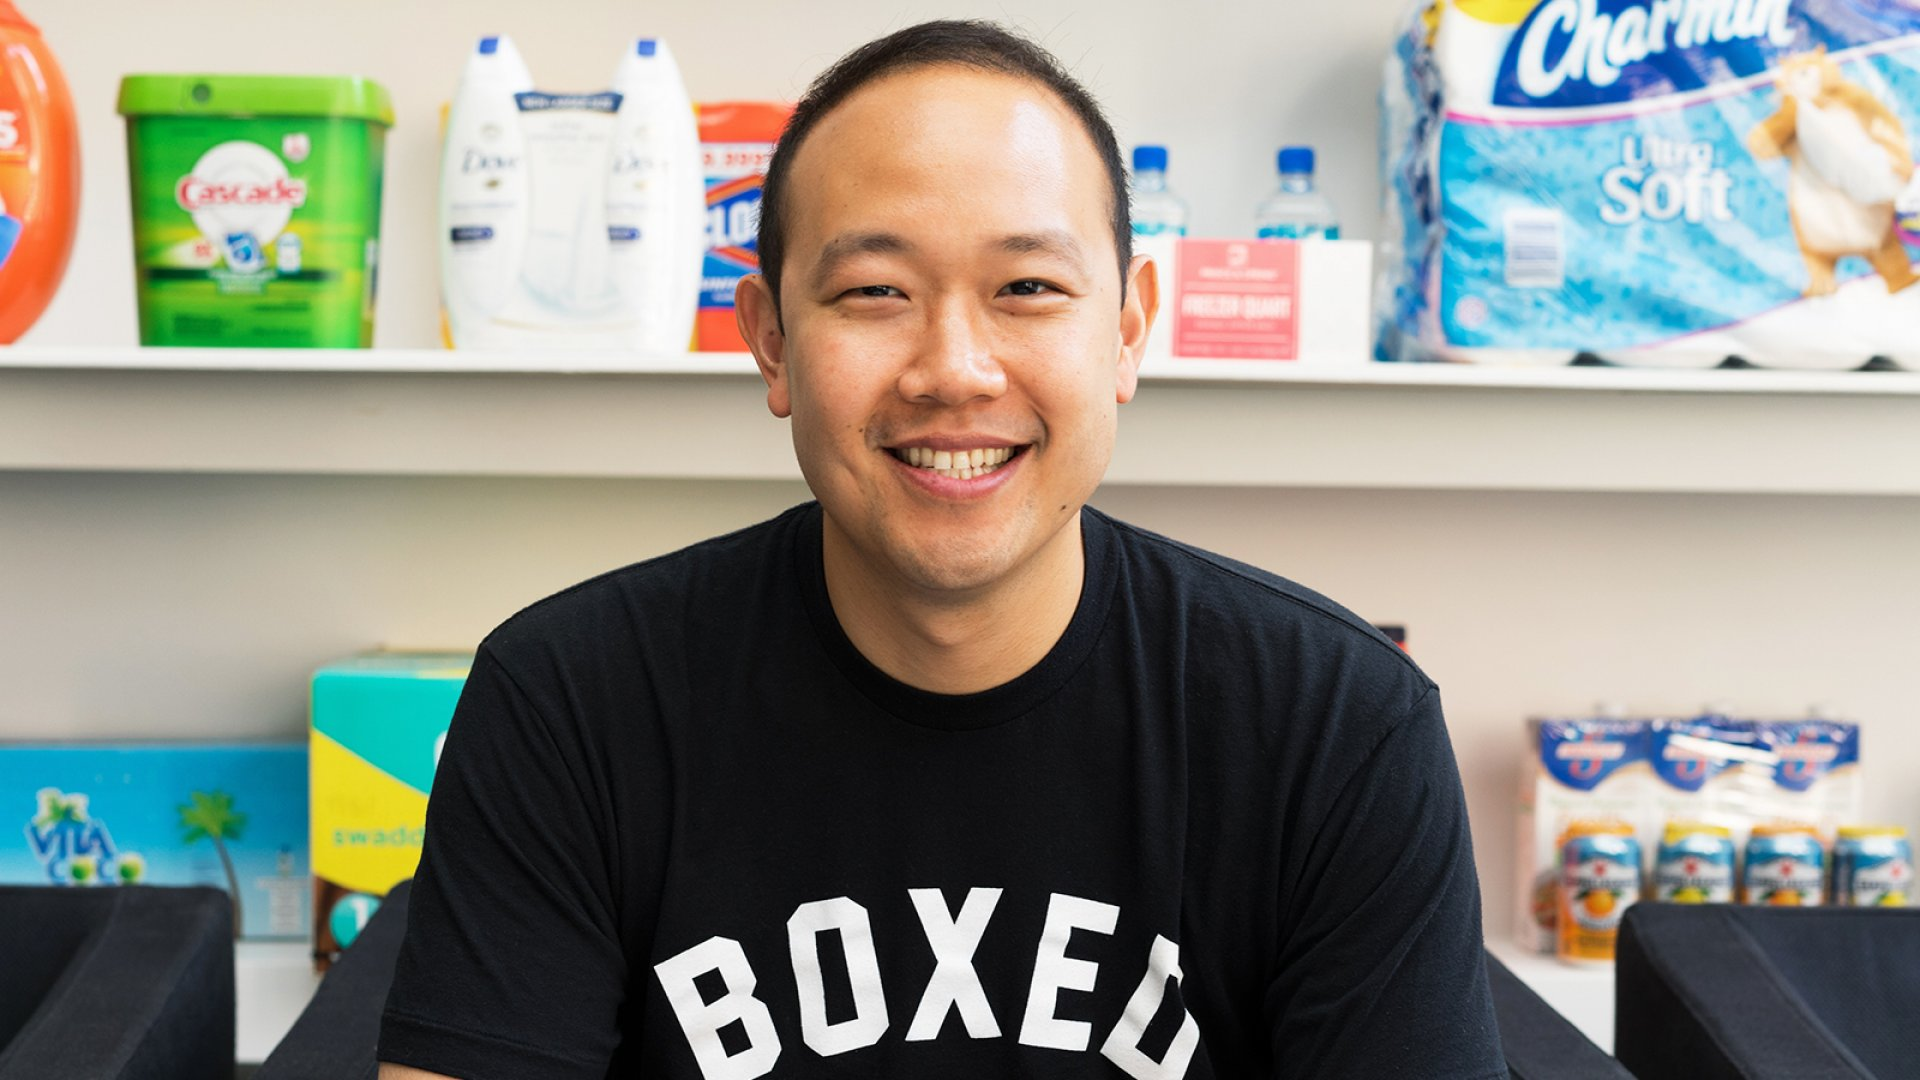 Chieh Huang, CEO of Boxed.